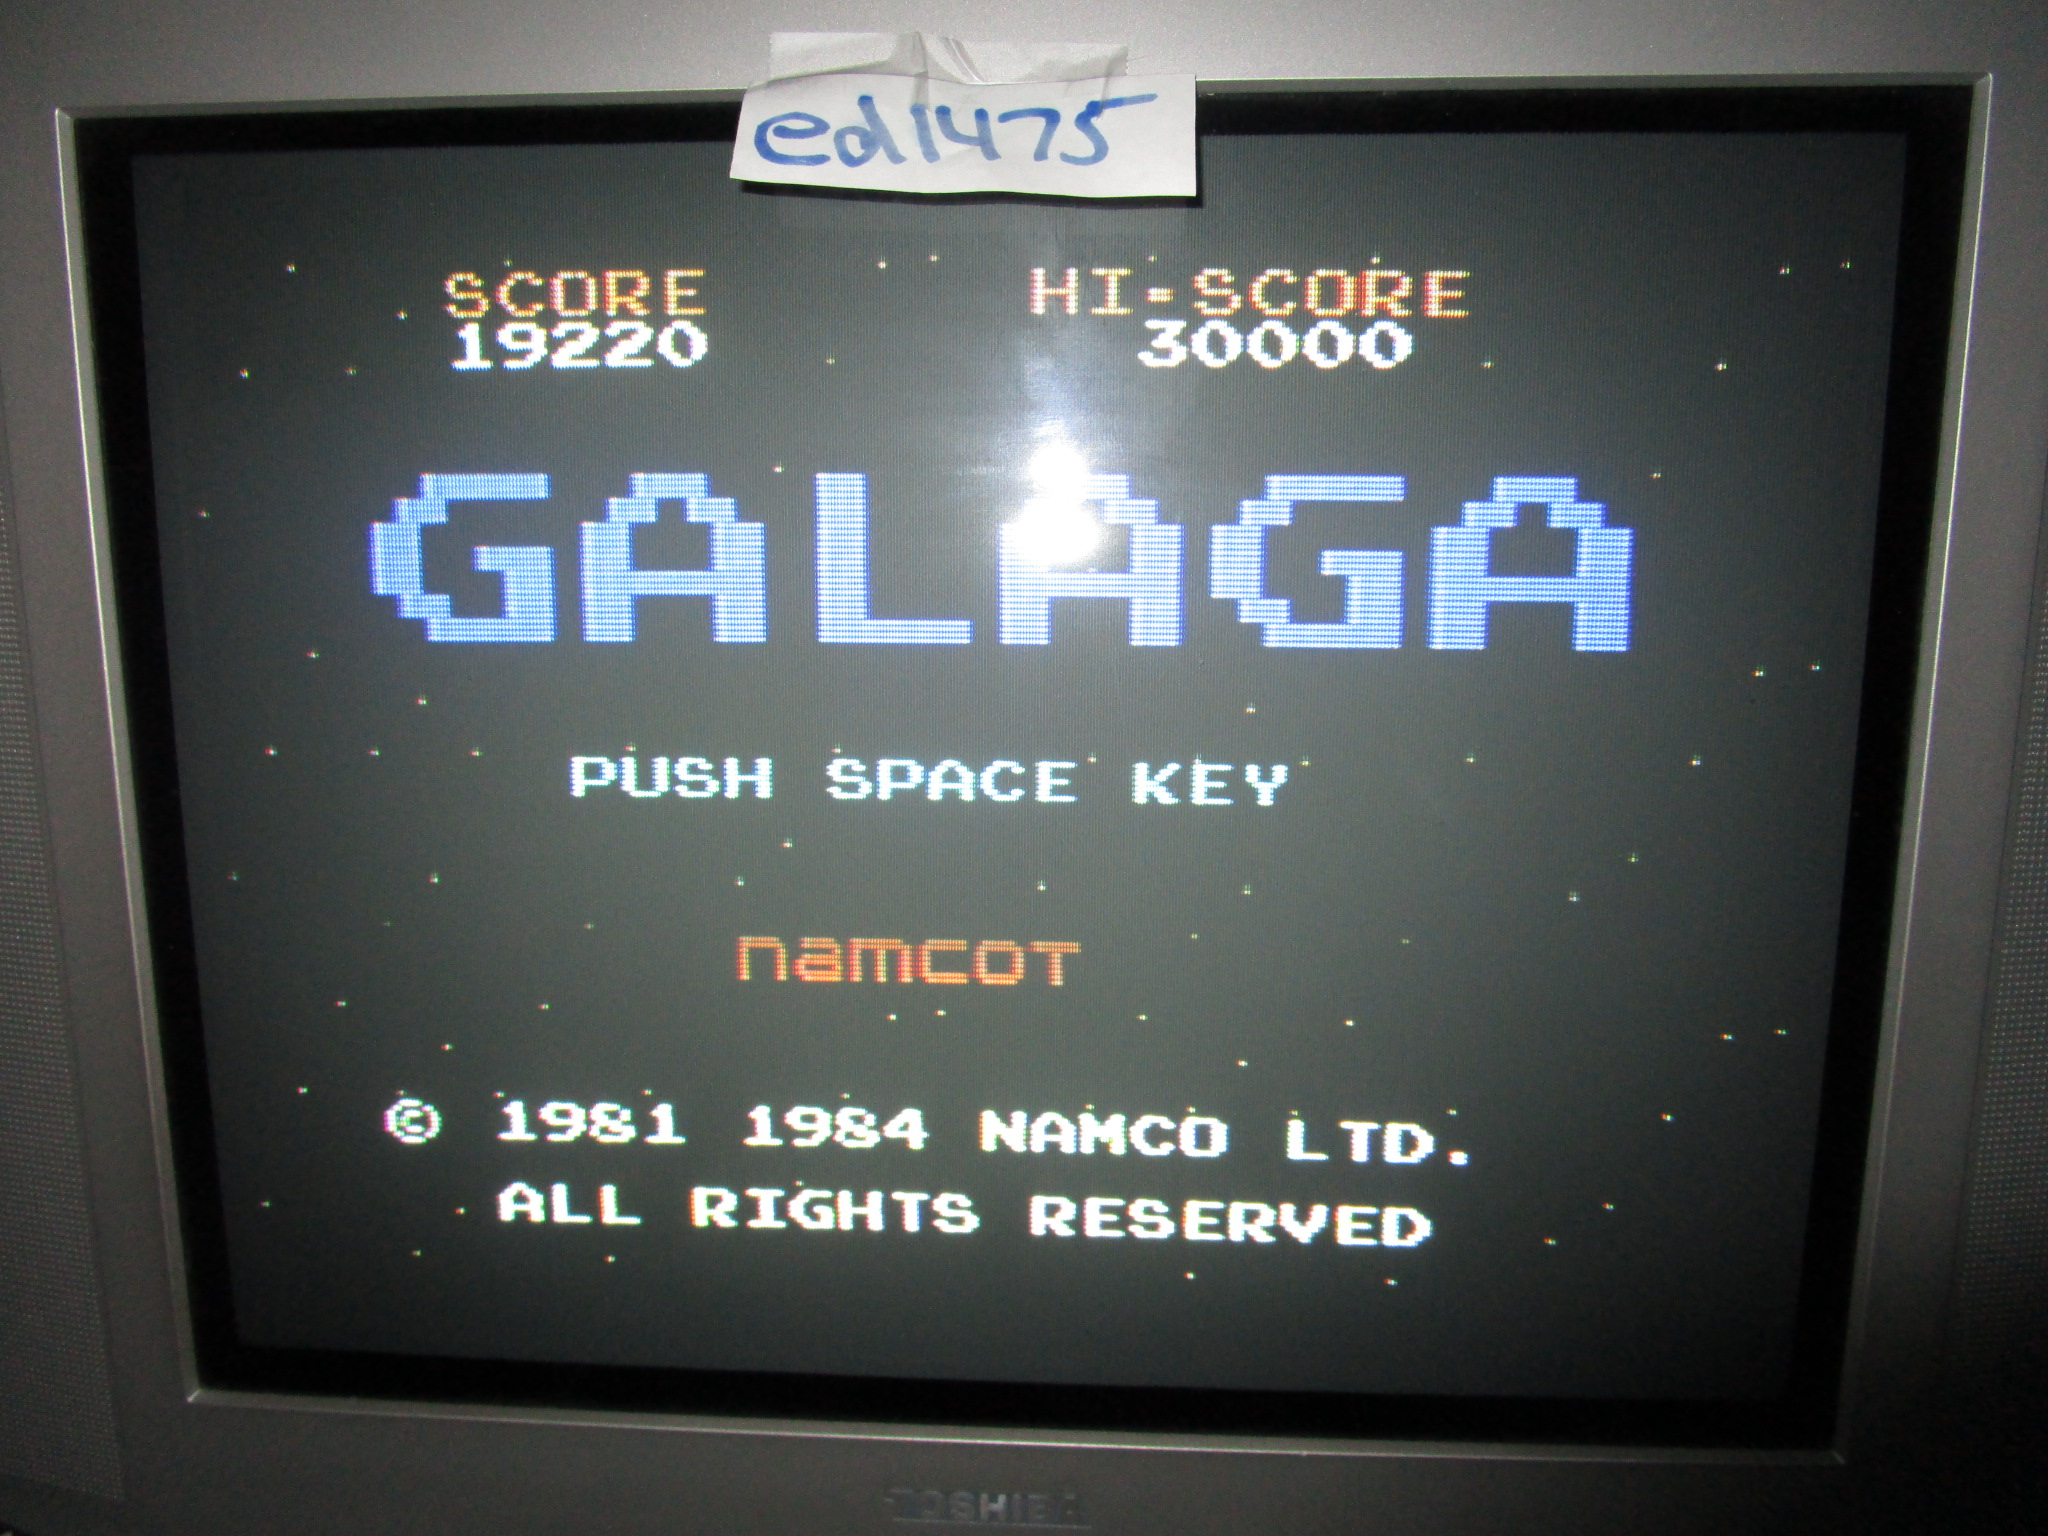 ed1475: Galaga (Colecovision) 19,220 points on 2015-05-25 18:51:29